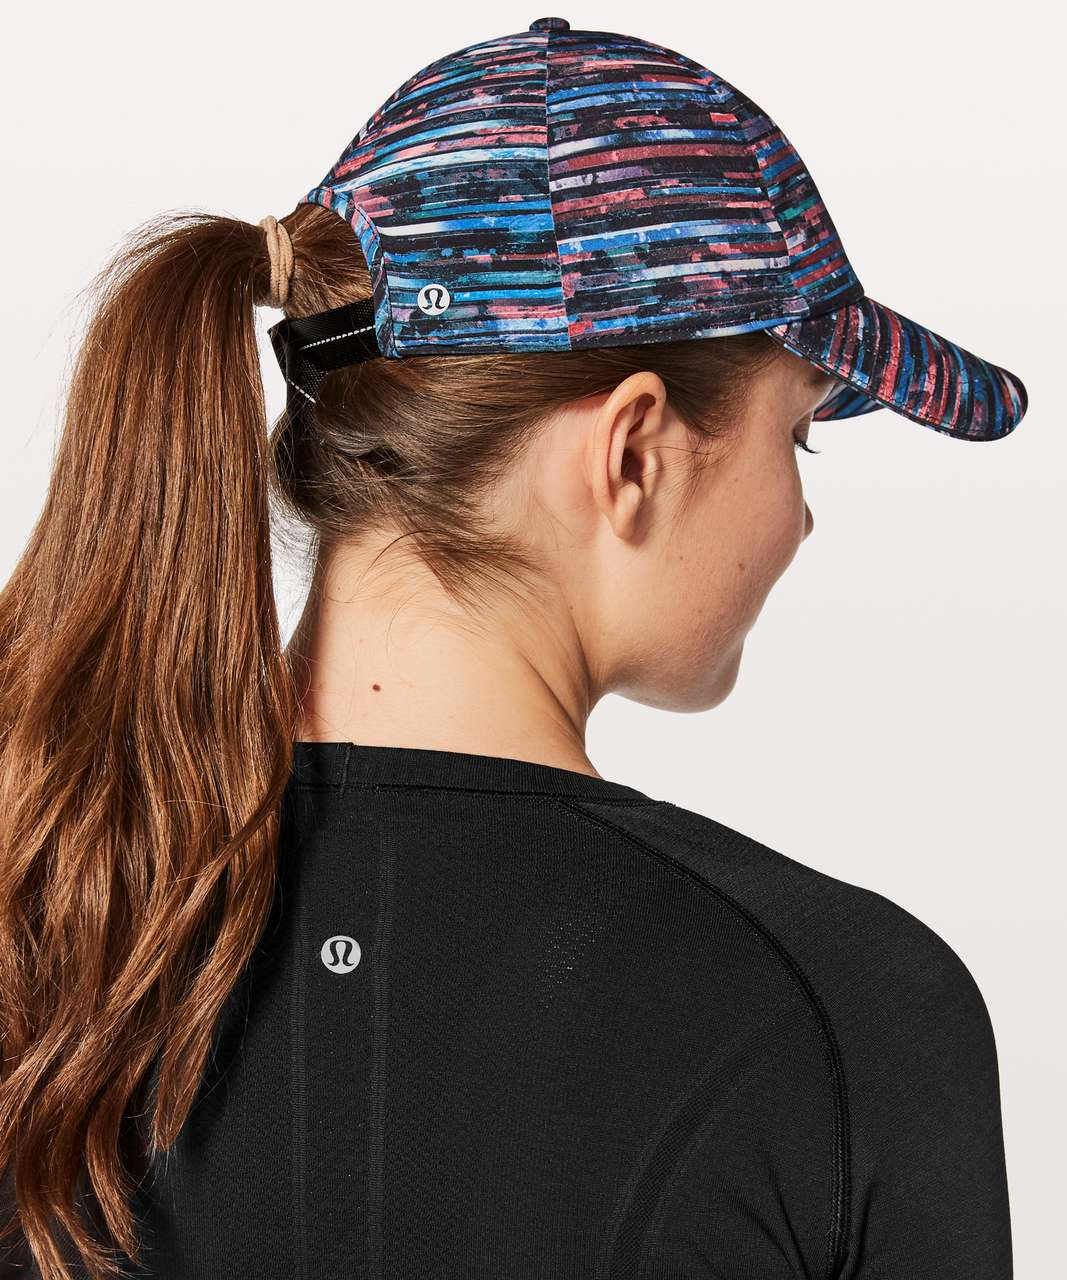 Lululemon Baller Hat Run - Hinshu Alpine White Multi